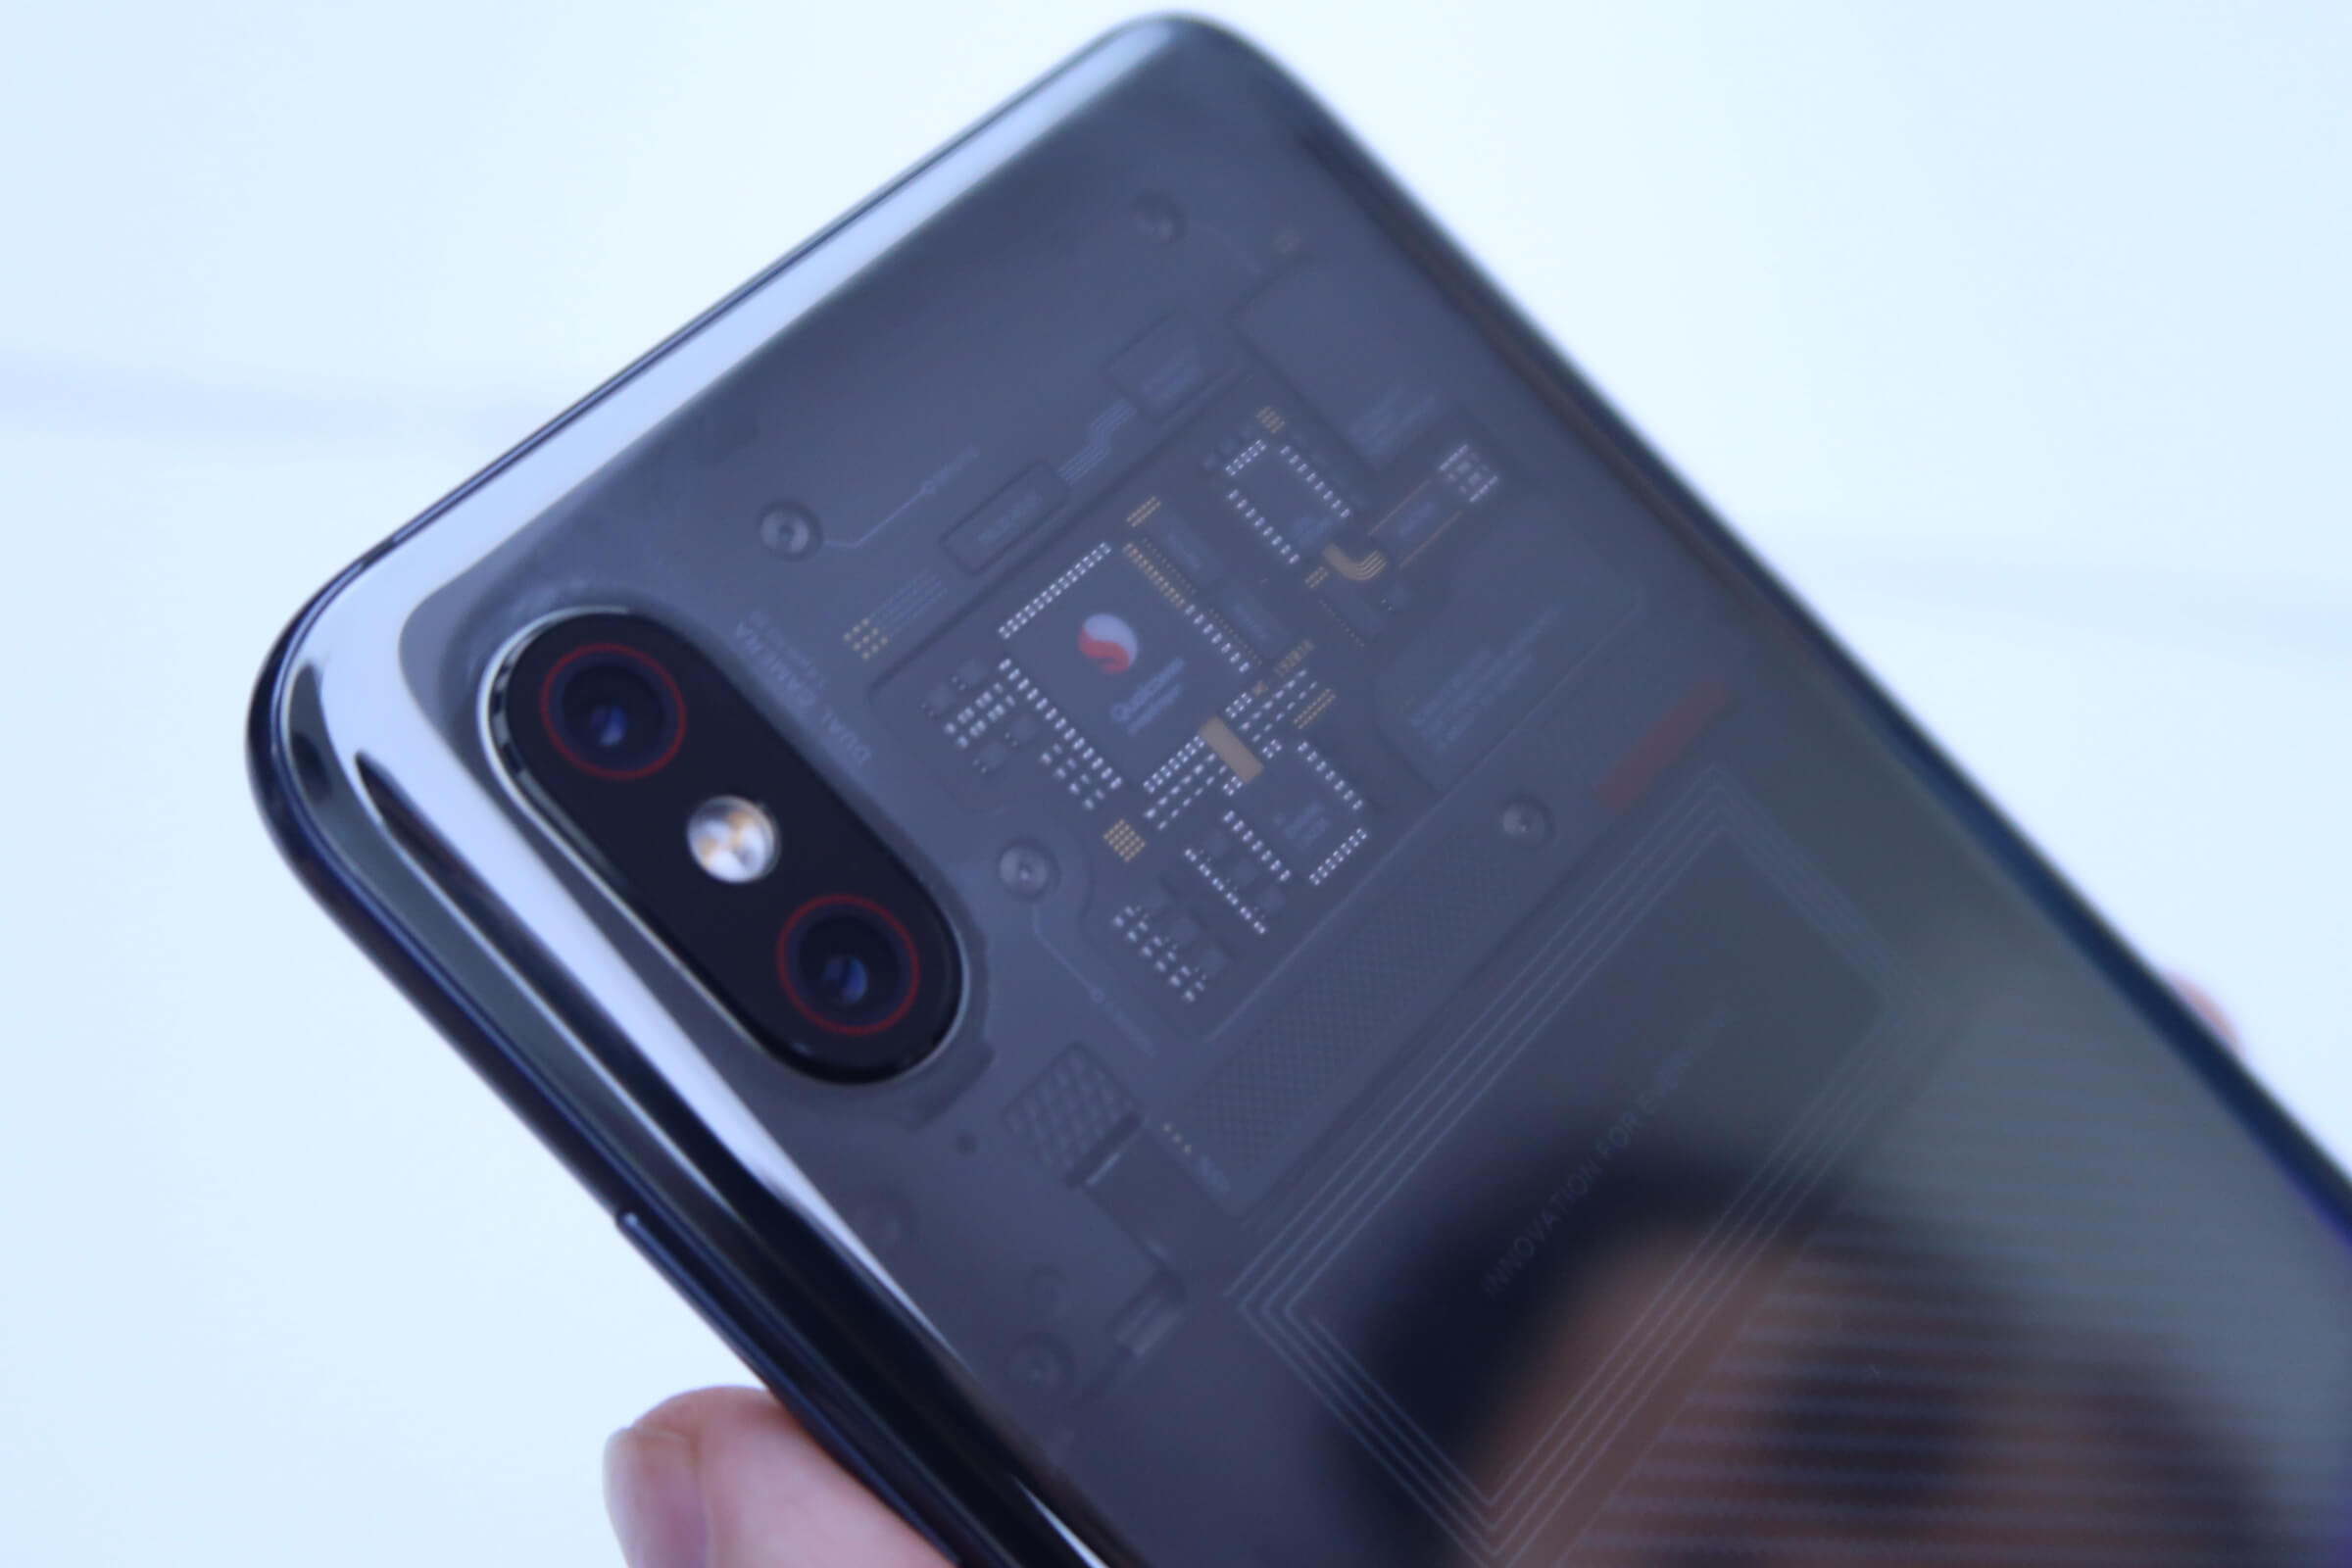 Le Xiaomi Mi 8 Explorer pourrait sortir en version internationale